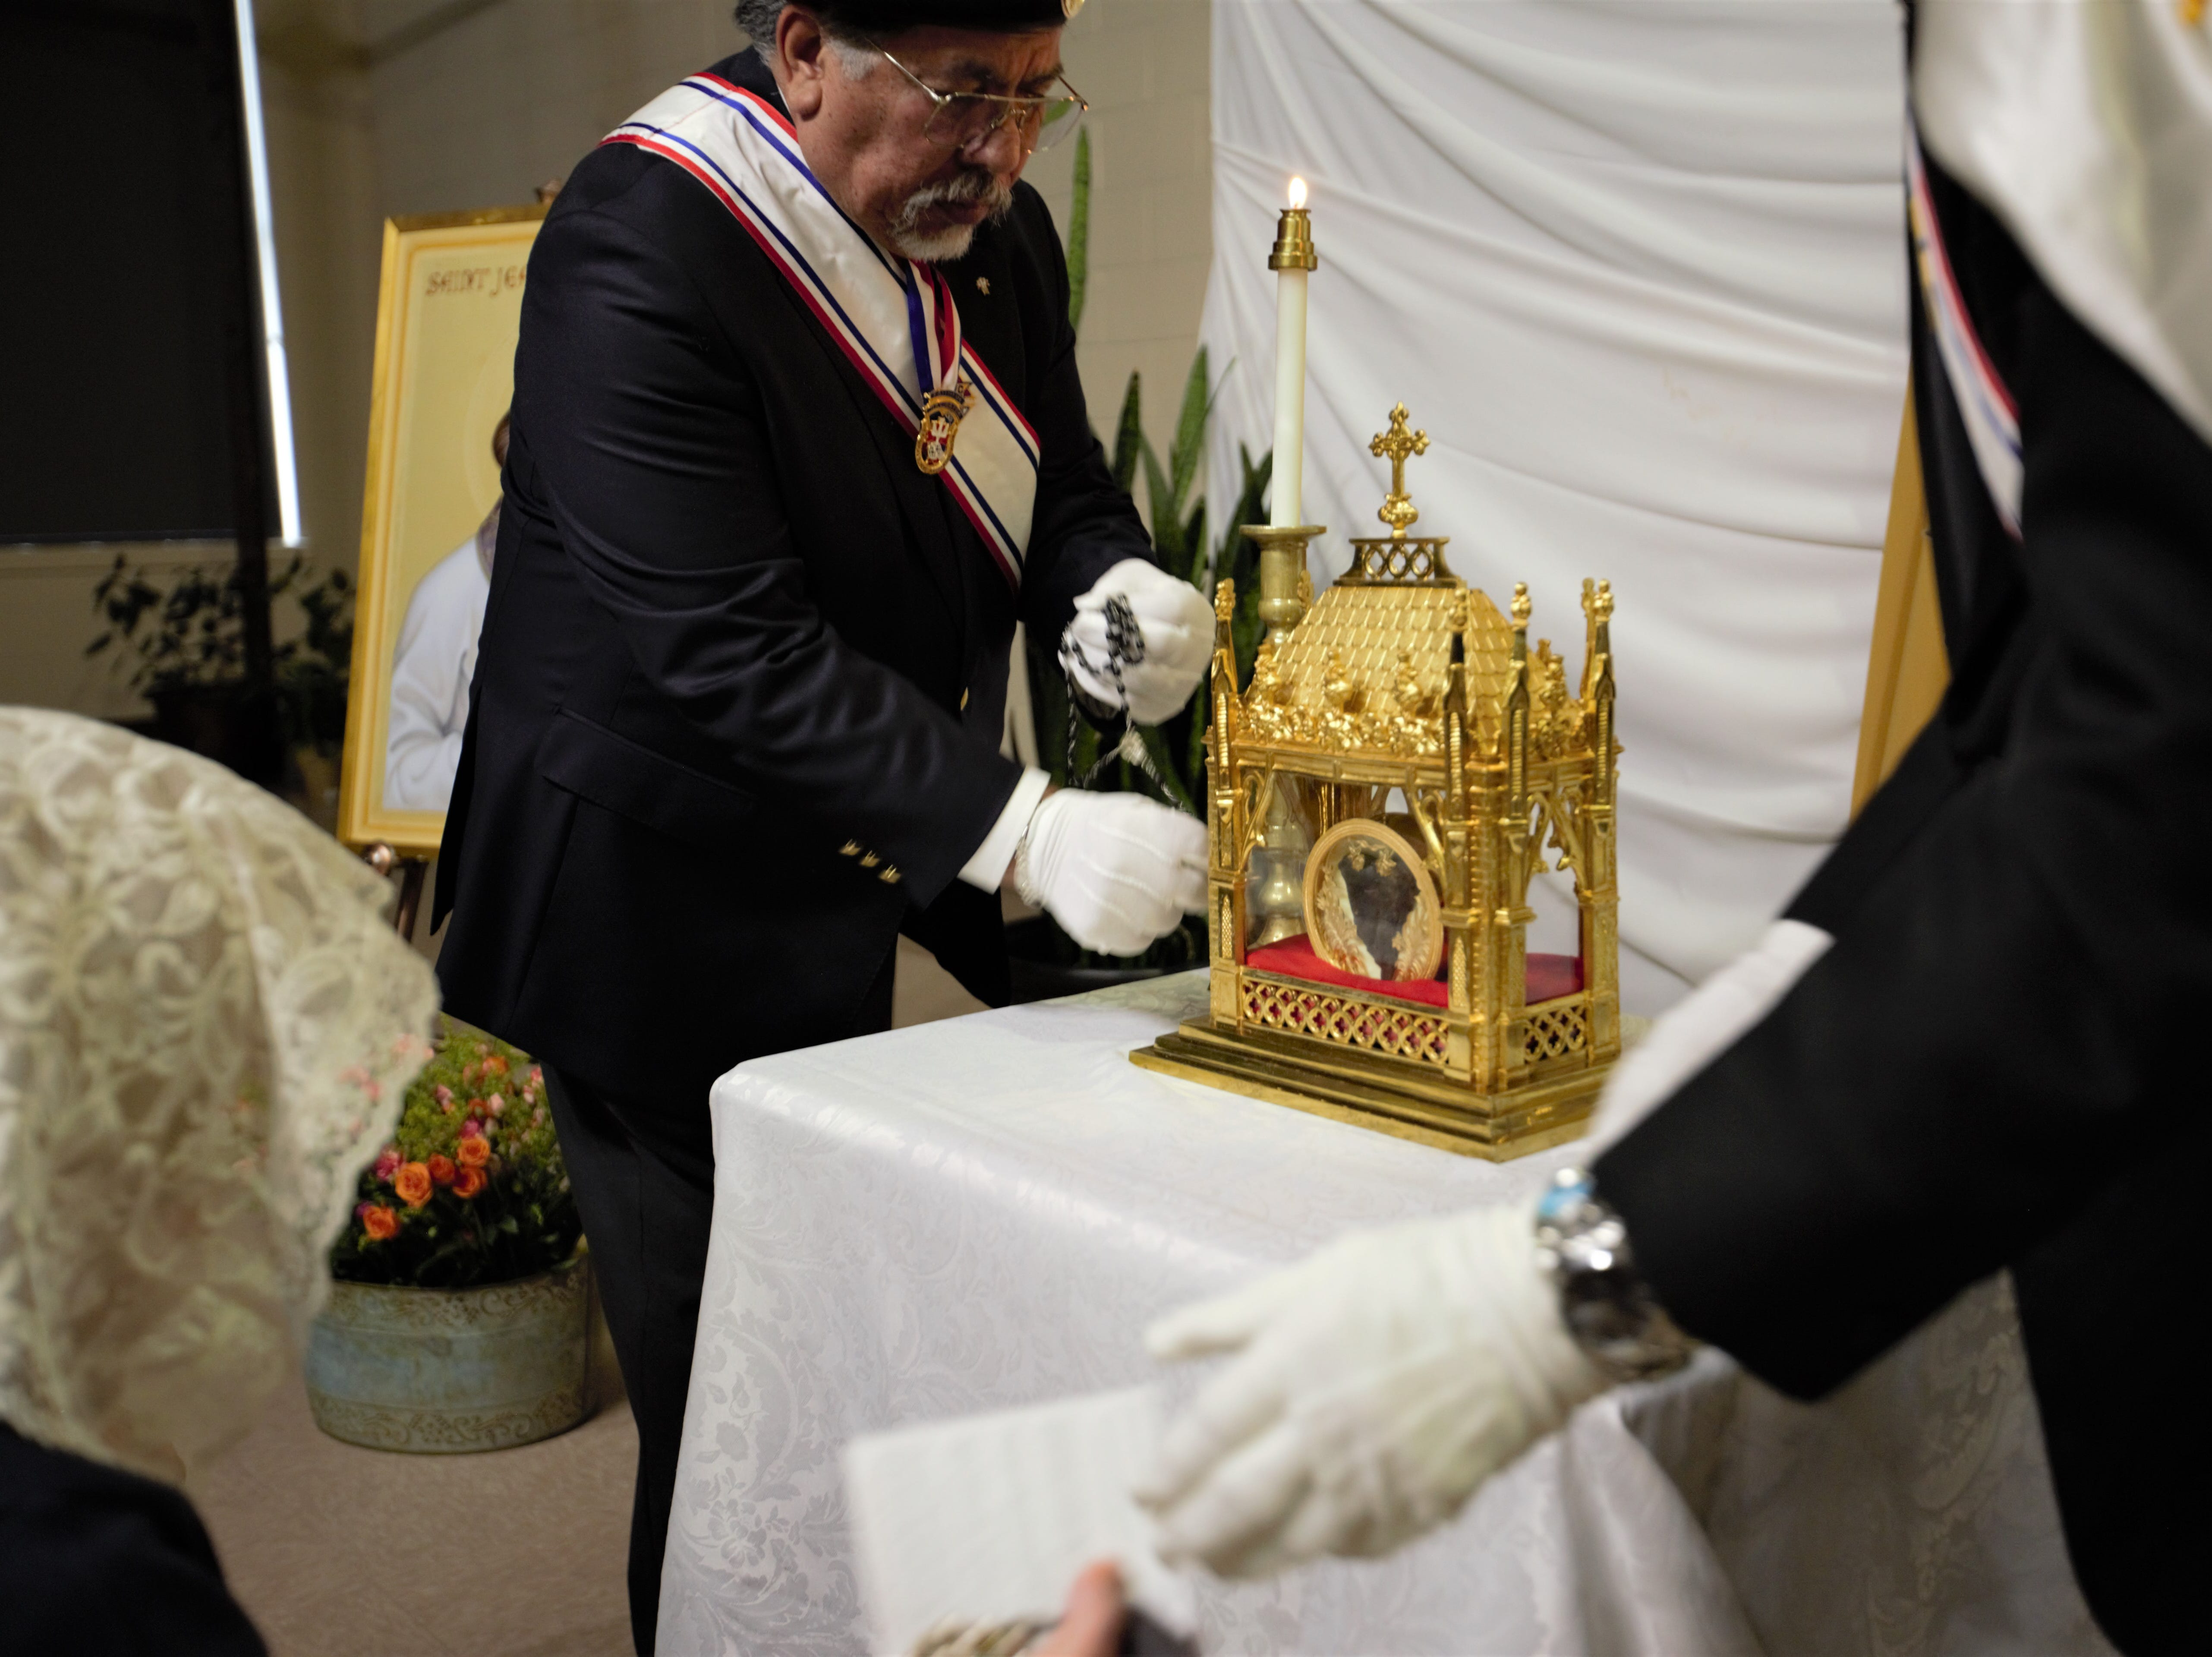 The 160-year-old heart of St. Jean Vianney, contained in a reliquary, is displayed at the Cathedral of the Immaculate Heart of Mary in Las Cruces on Tuesday, May 7, 2019.